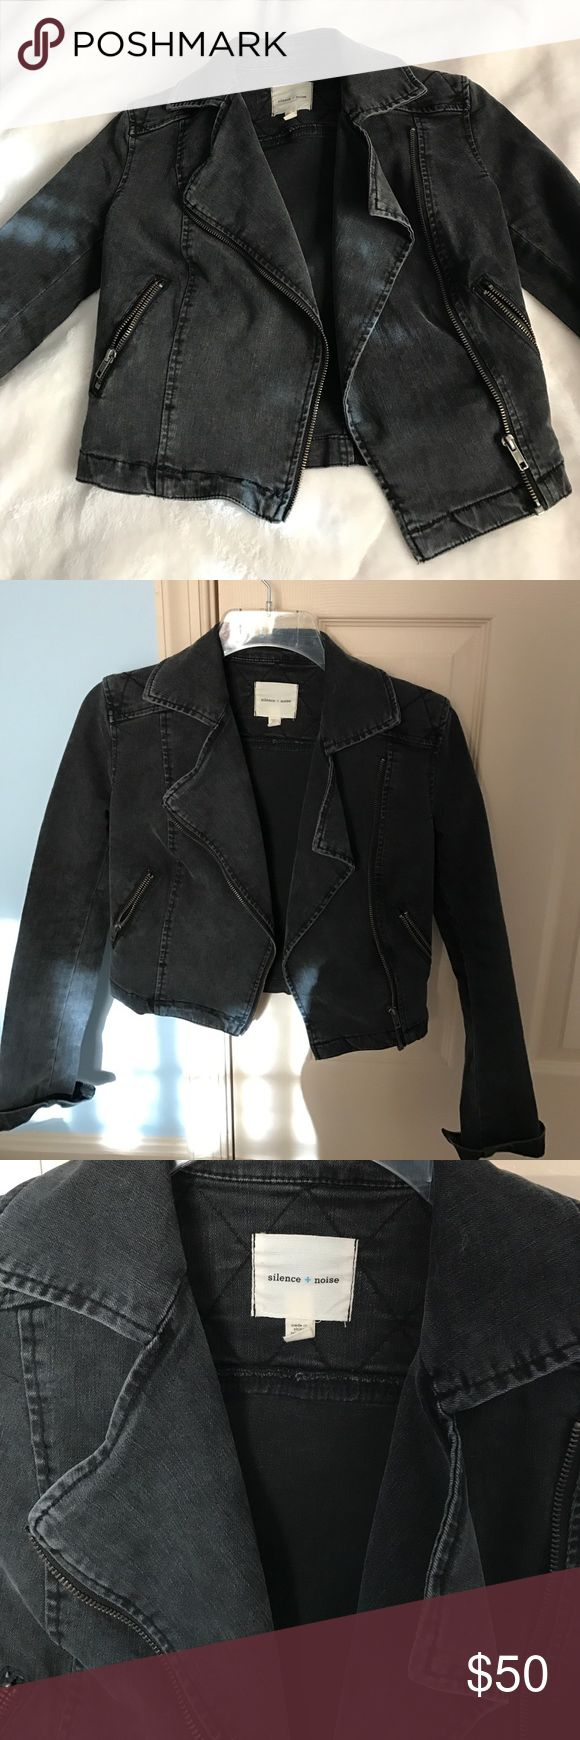 MOTO-style jacket Motorcycle style jacket in black denim. purchased from Urban Ourfitters. Size XS, great for petite ladies. For reference, I'm about 5 ft, 96 pounds. Worn at most, 3 times. Almost like new. silence + noise Jackets & Coats Jean Jackets